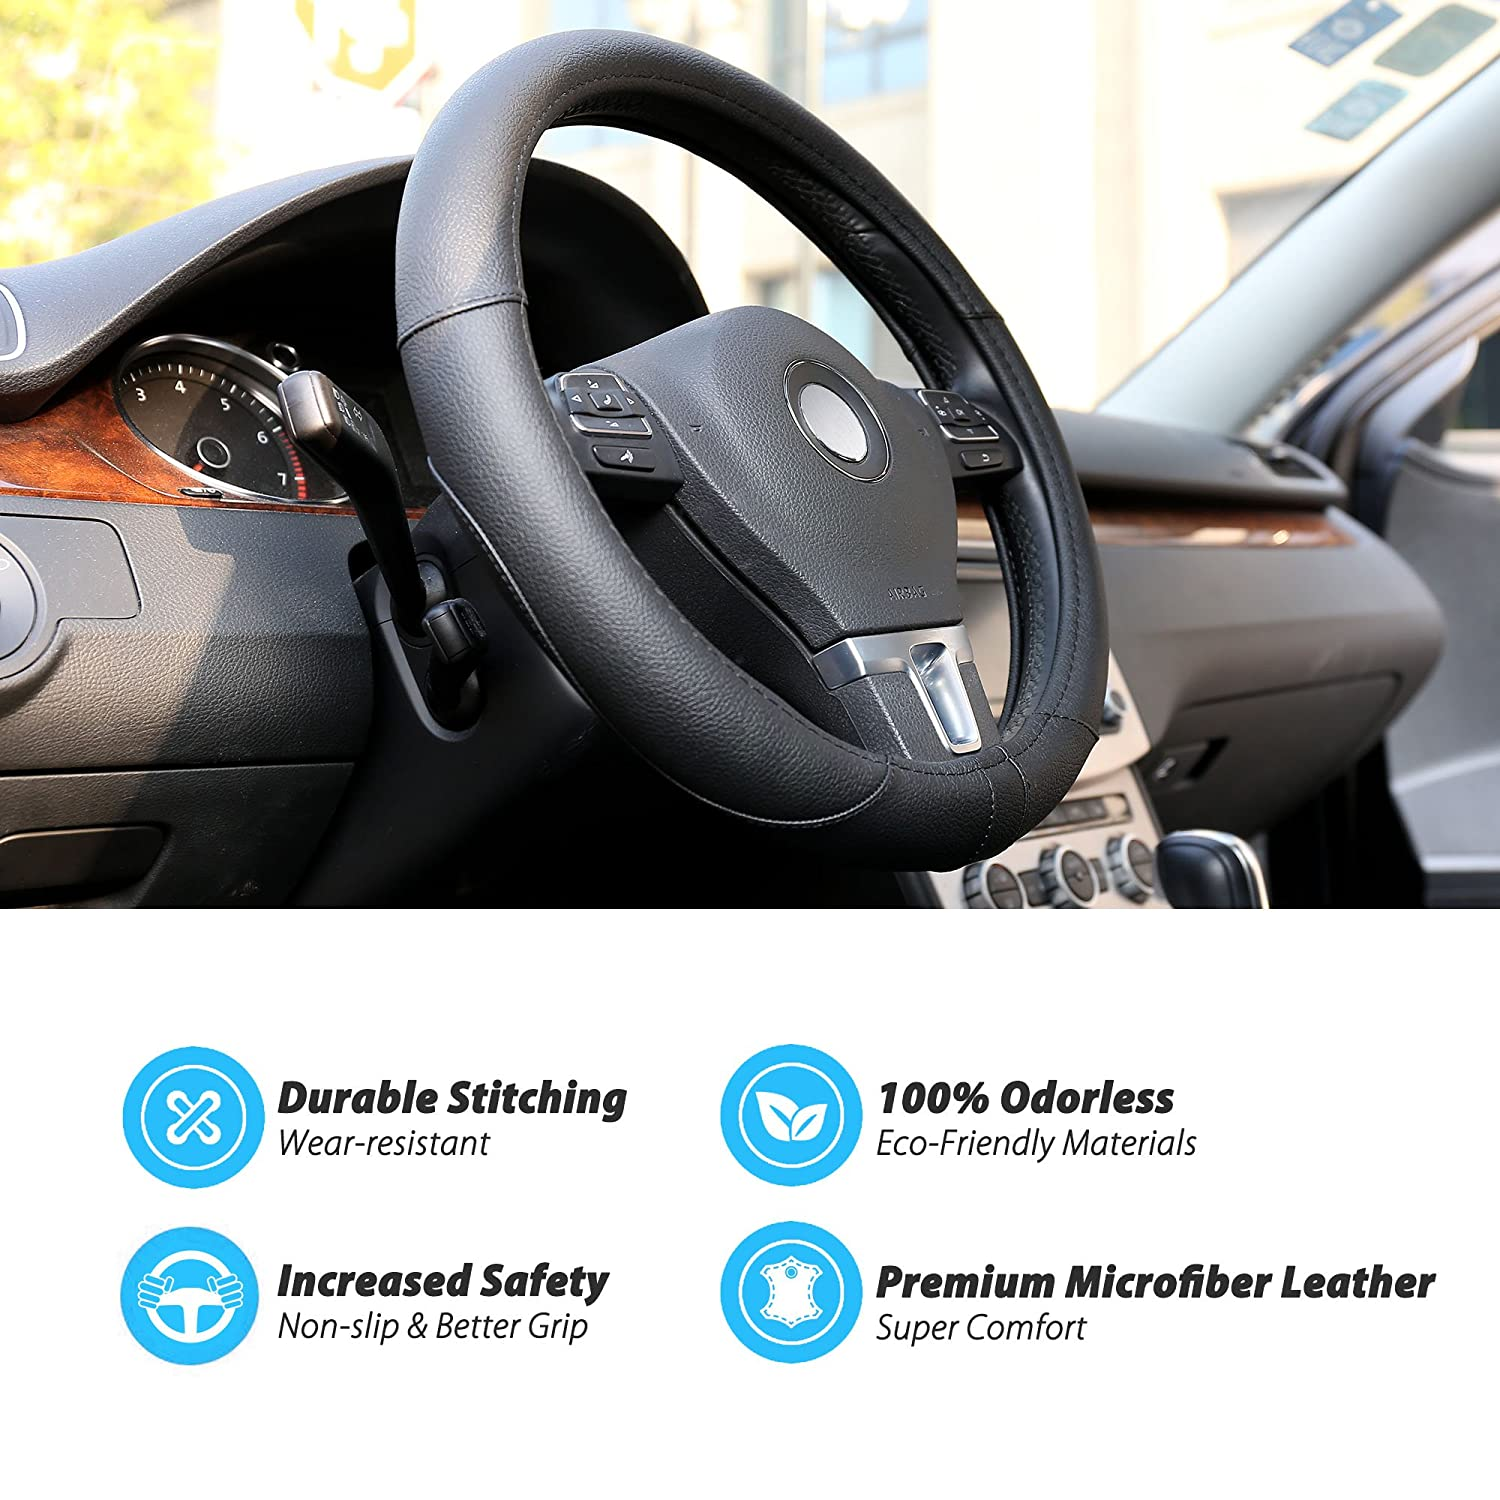 Breathable Universal 15 inch with Microfiber Leather for Truck Non-Slip Grip SUV LotFancy Car Steering Wheel Cover for Men Boys Tan Odor-Free Black /& Blue